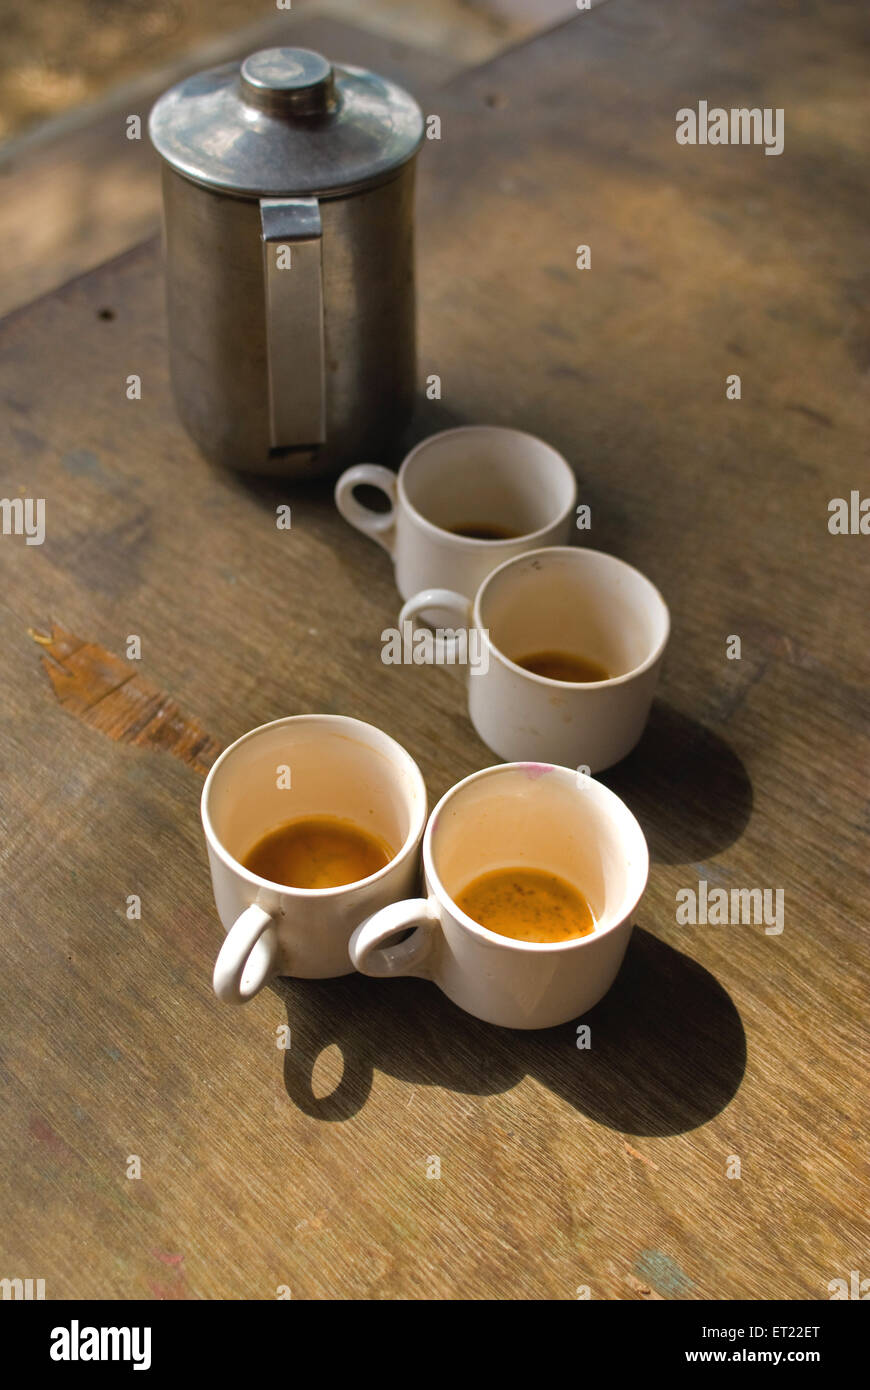 Empty cups of tea and flask on table - Stock Image